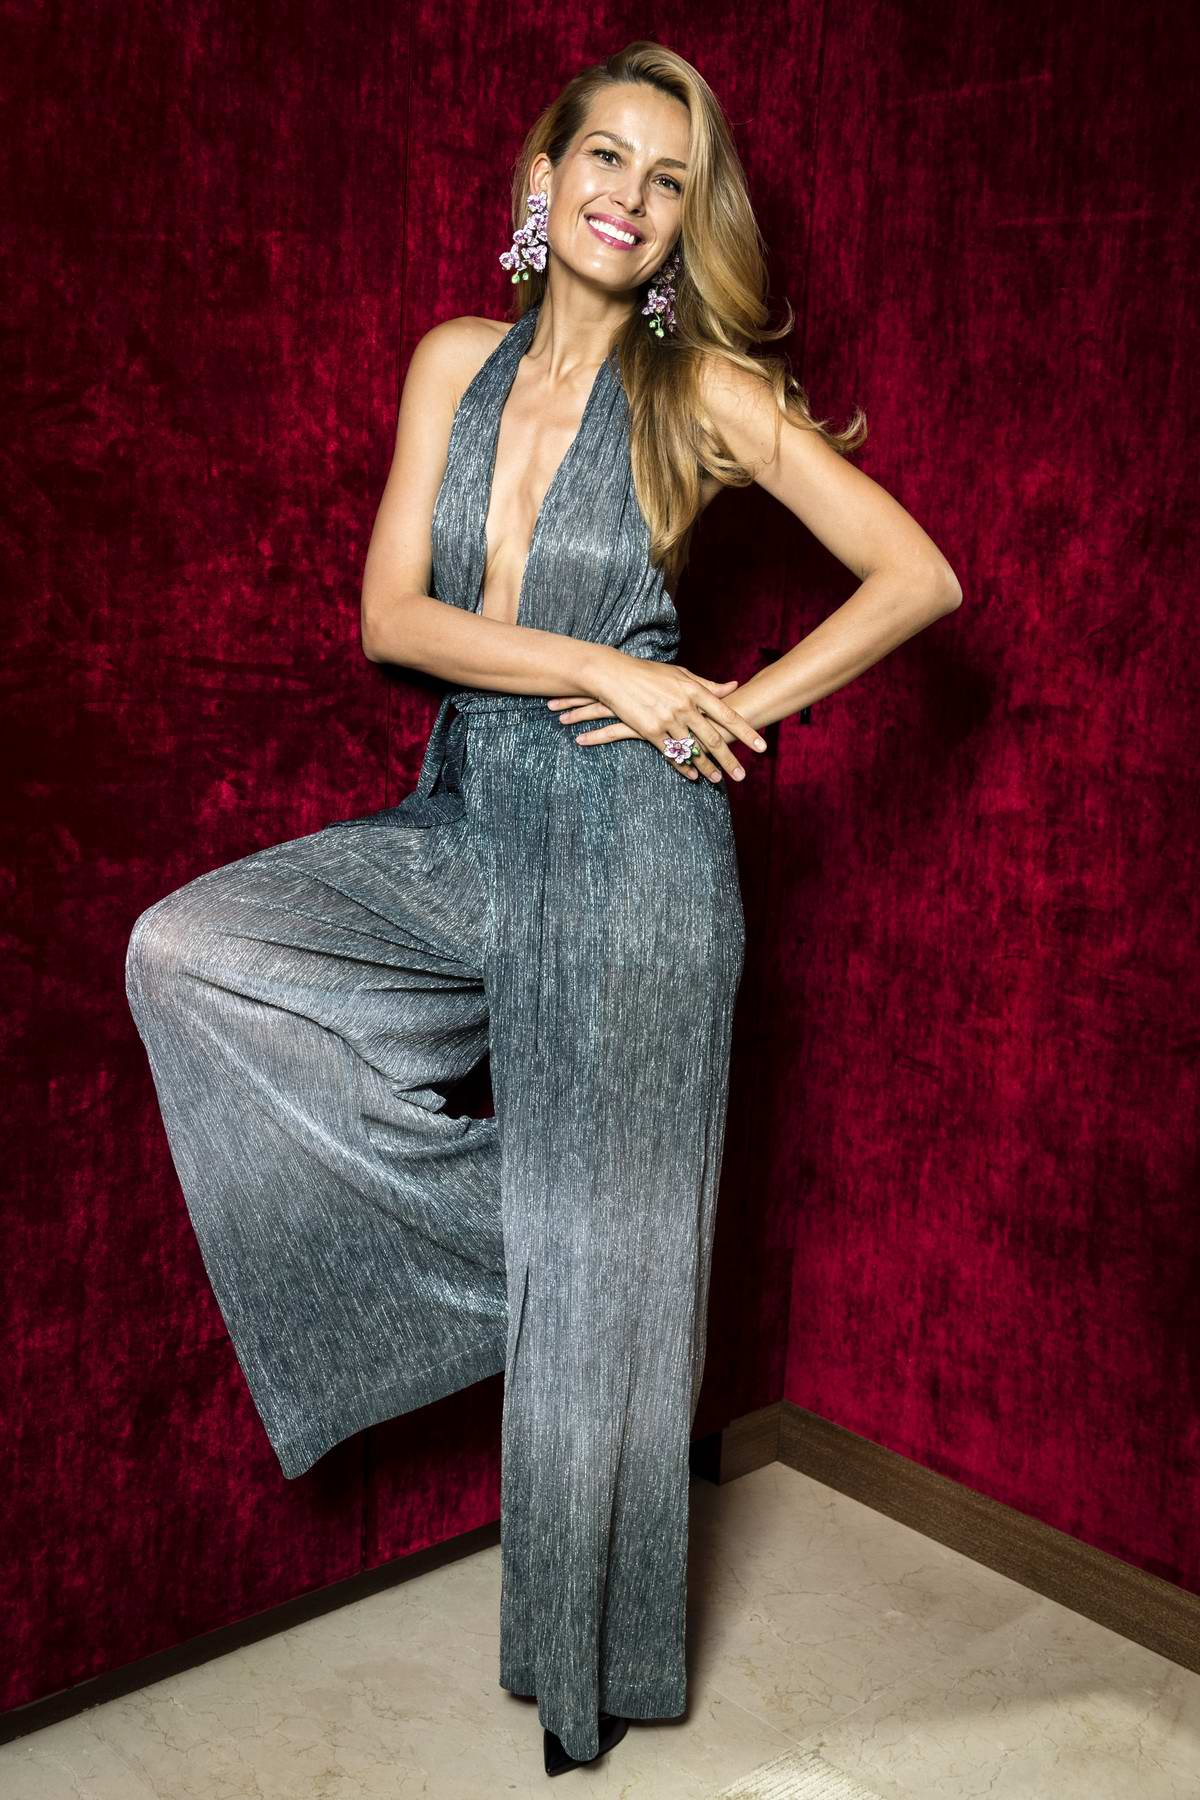 Petra Nemcova attends the Chopard Booth Baselworld in Basel, Switzerland